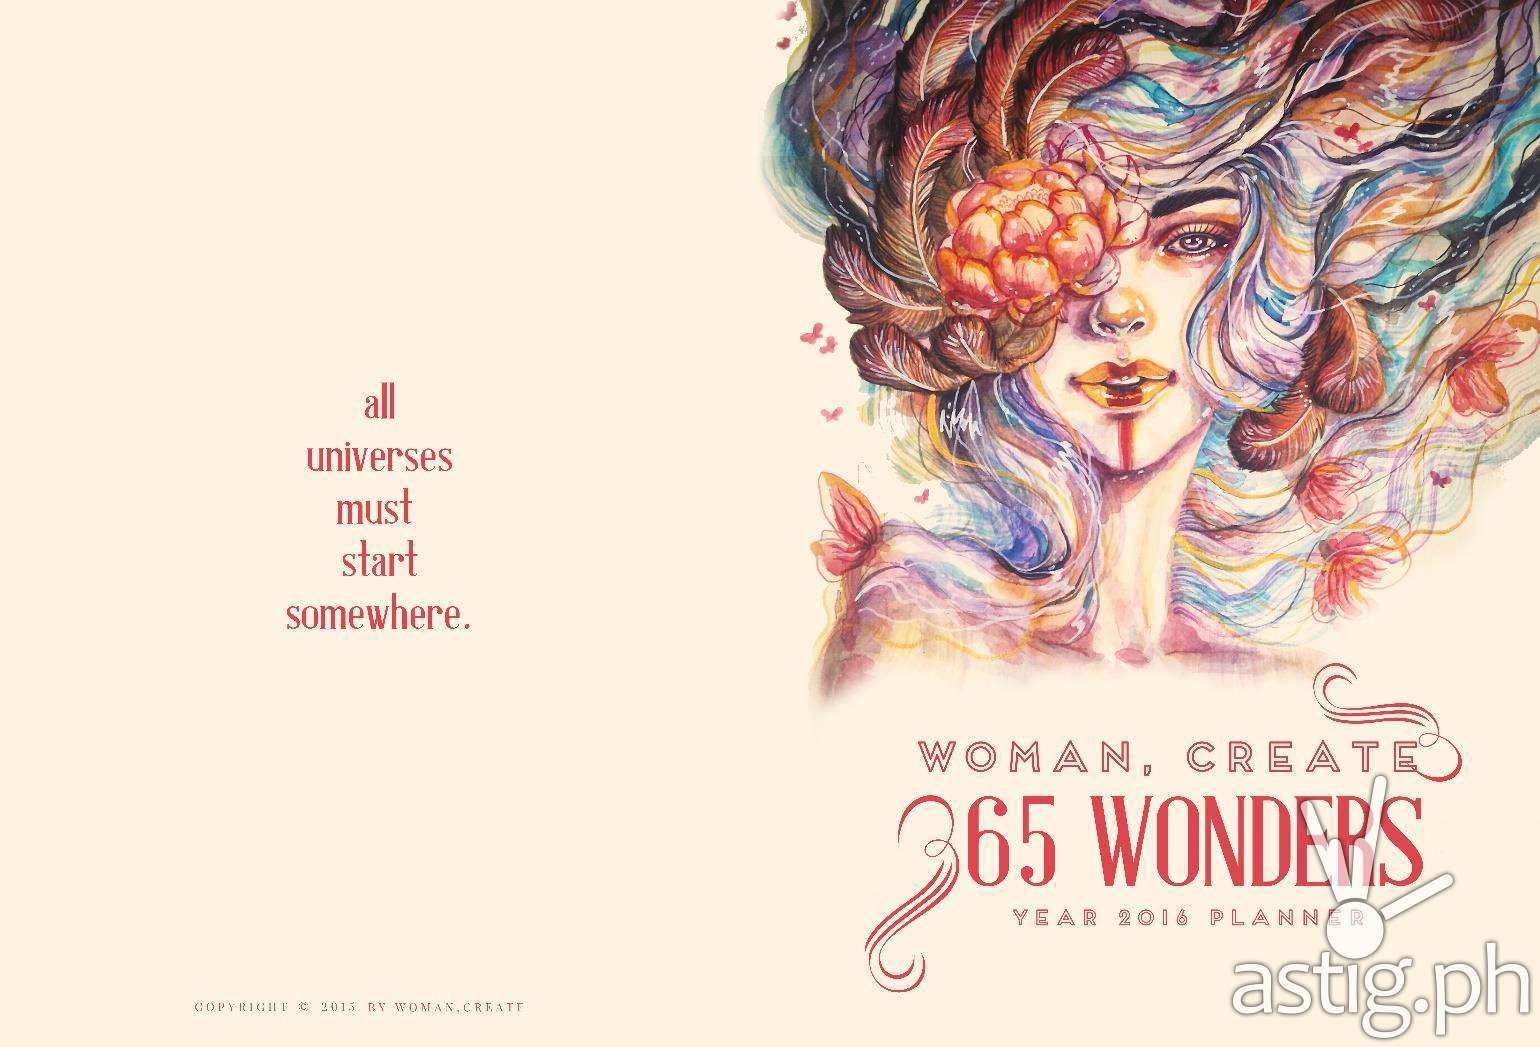 woman create 365 wonders